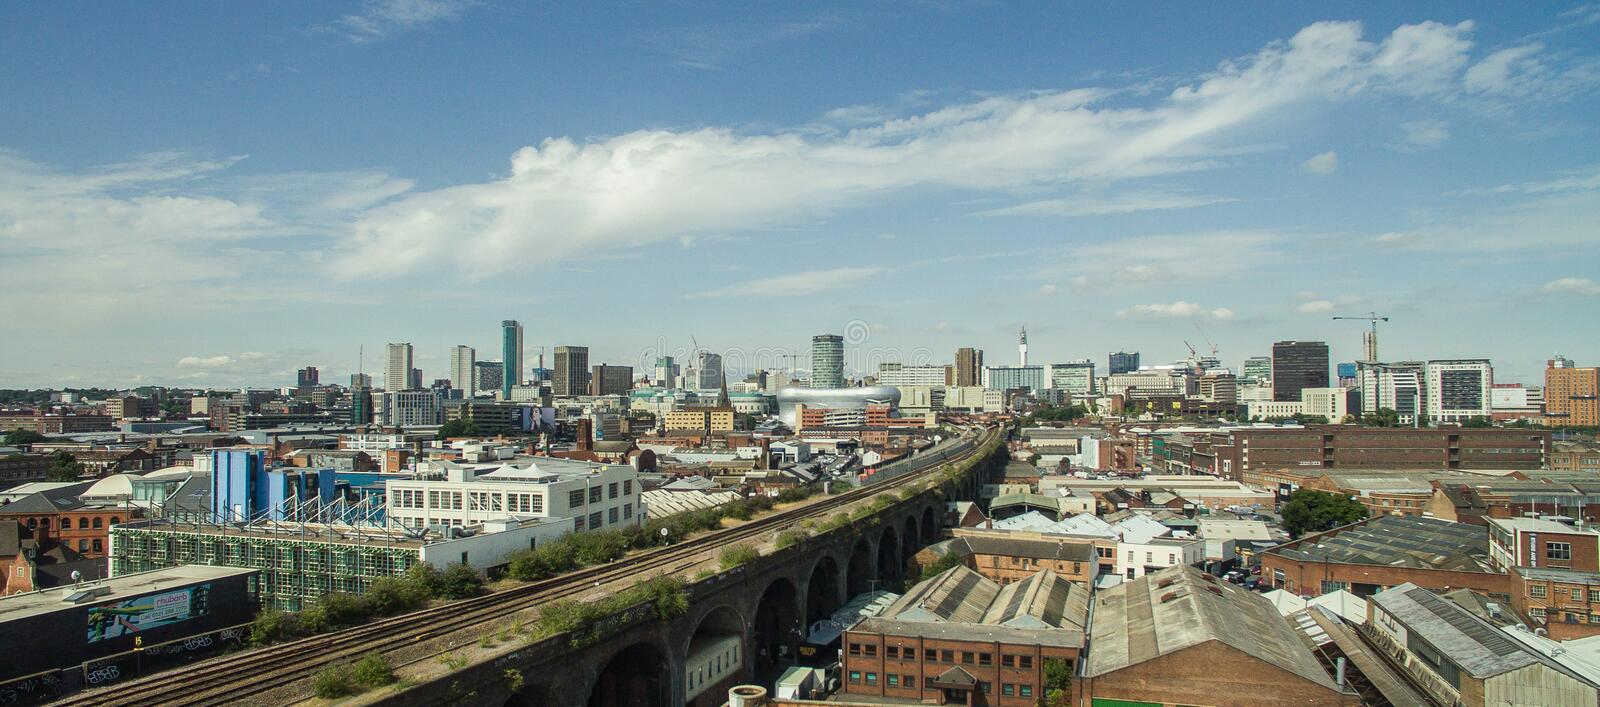 Photo of Birmingham, United kingdom made by drone. Birmingham`s city centre in Summer 2018 stock image